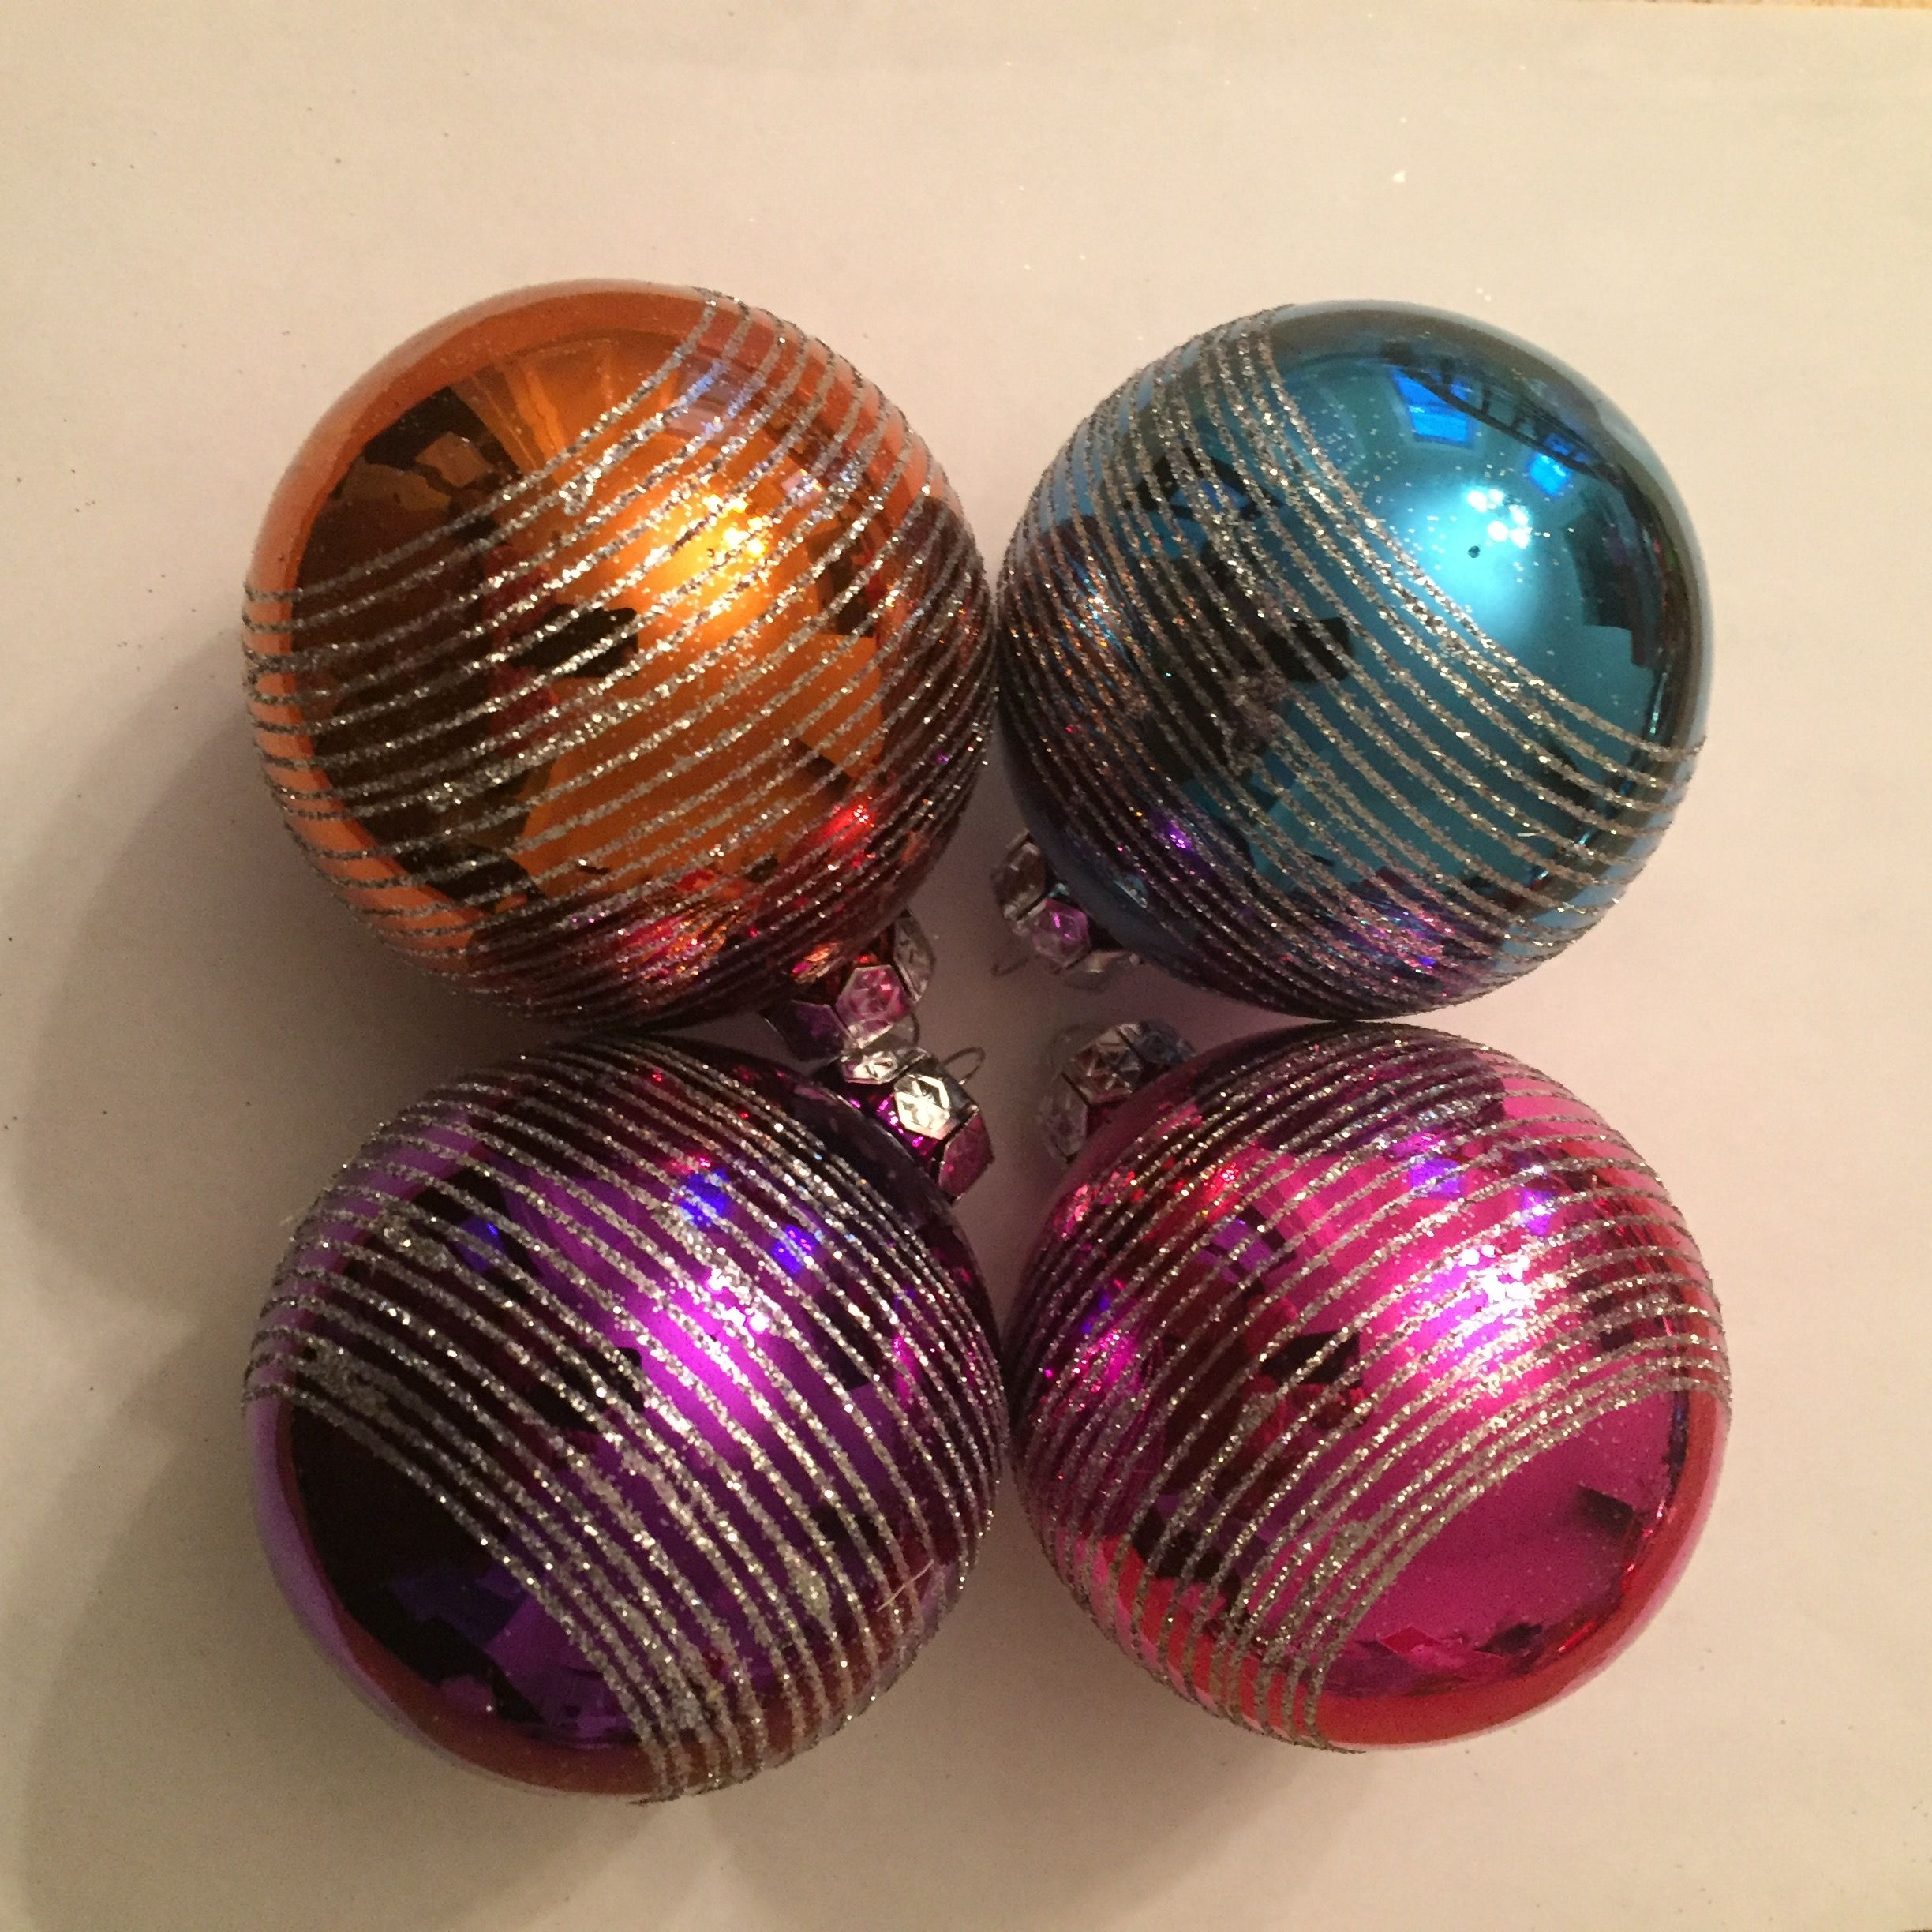 Multi-Colored Ball Ornaments | glass - 2 5/8 in. | 4 ornaments | Bought at Walmart | This is my color scheme: turquoise, raspberry pink, purple, and orange. I think they are a good fit with the Mexican tree - wish I had bought more!.